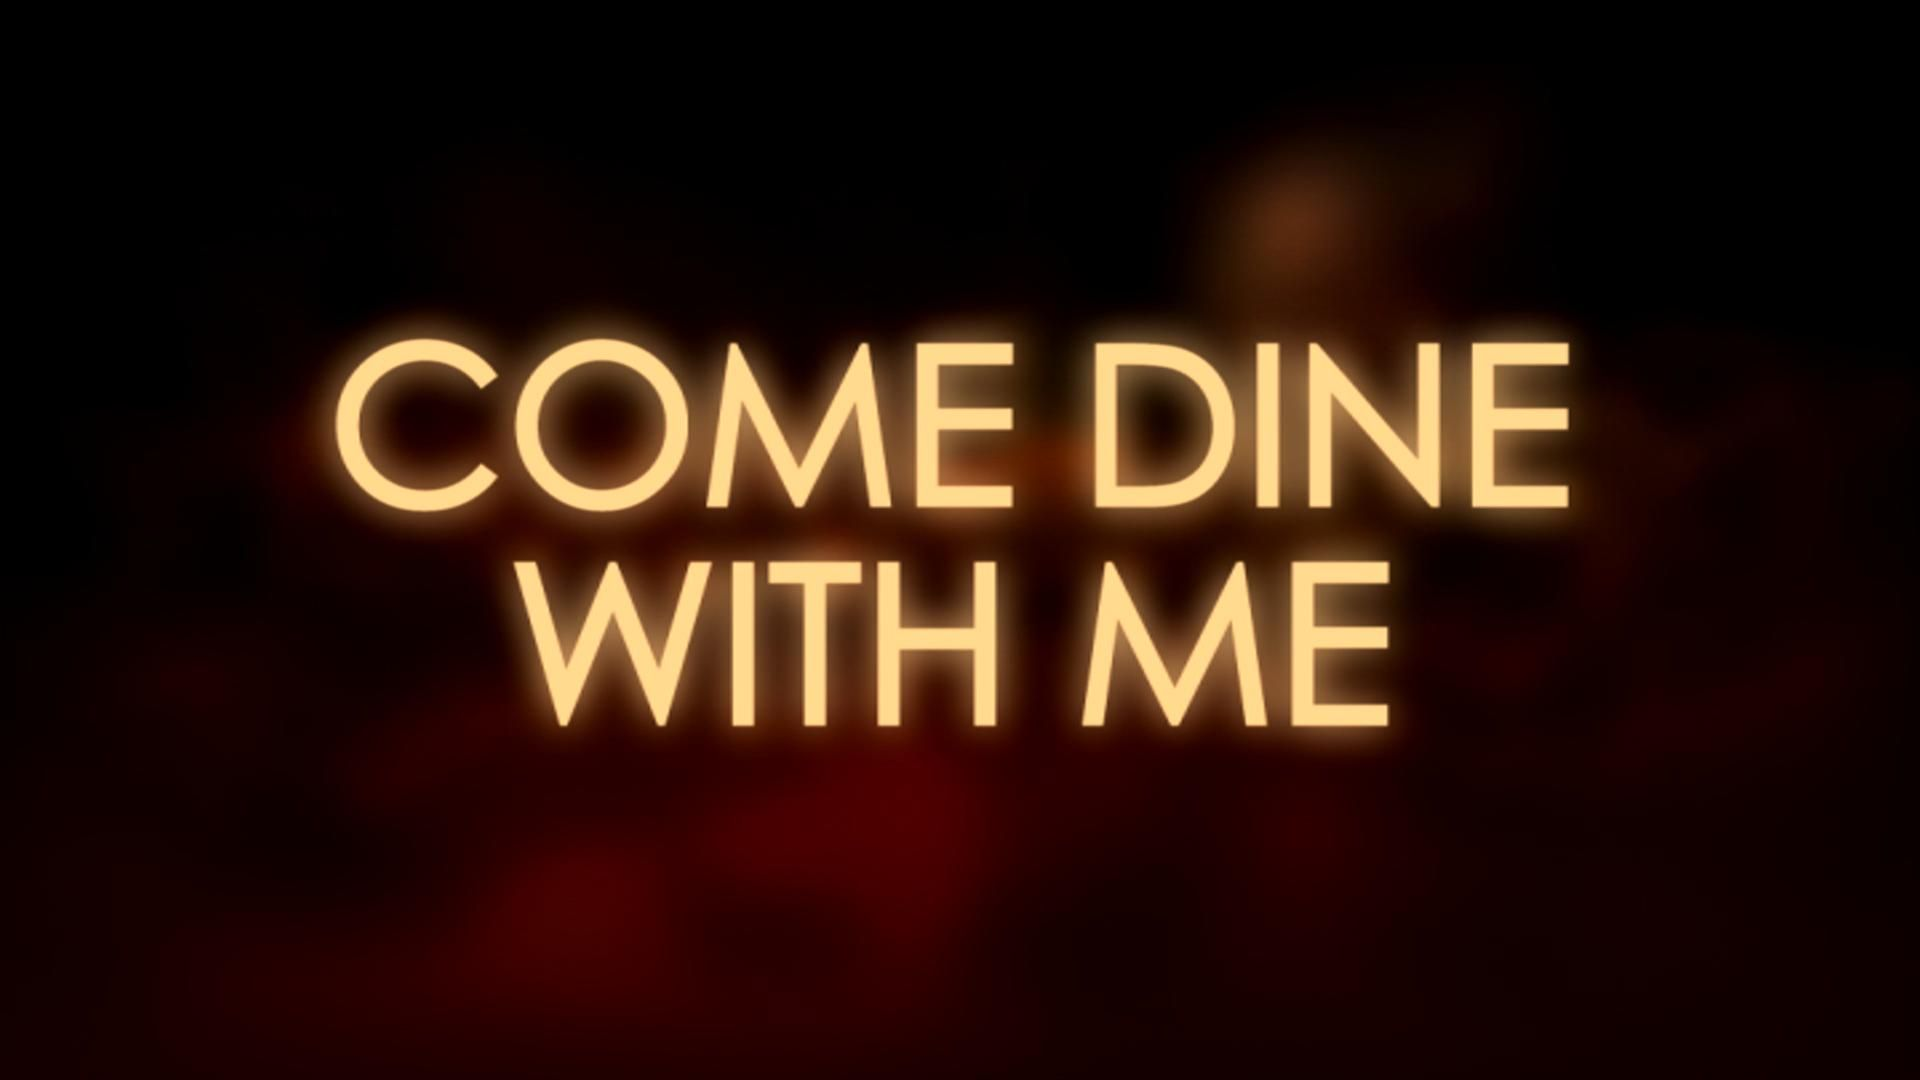 York Come Dine With Me 2011